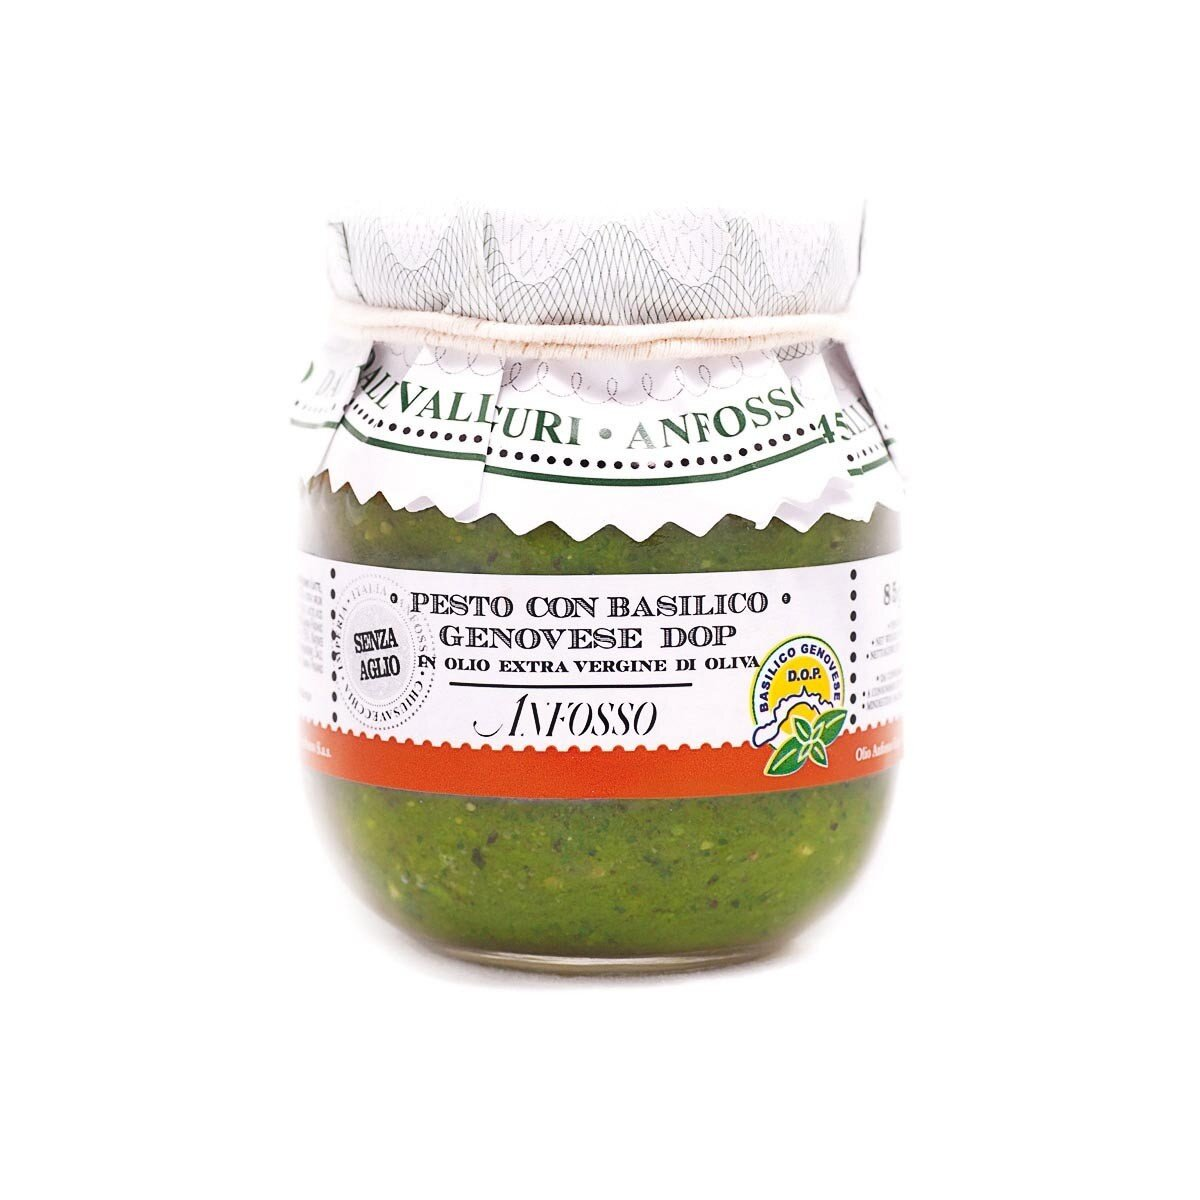 pesto-with-genovese-basil-pdo-without-garlic-in-extra-virgin-olive-oil-anfosso-85gr.jpg